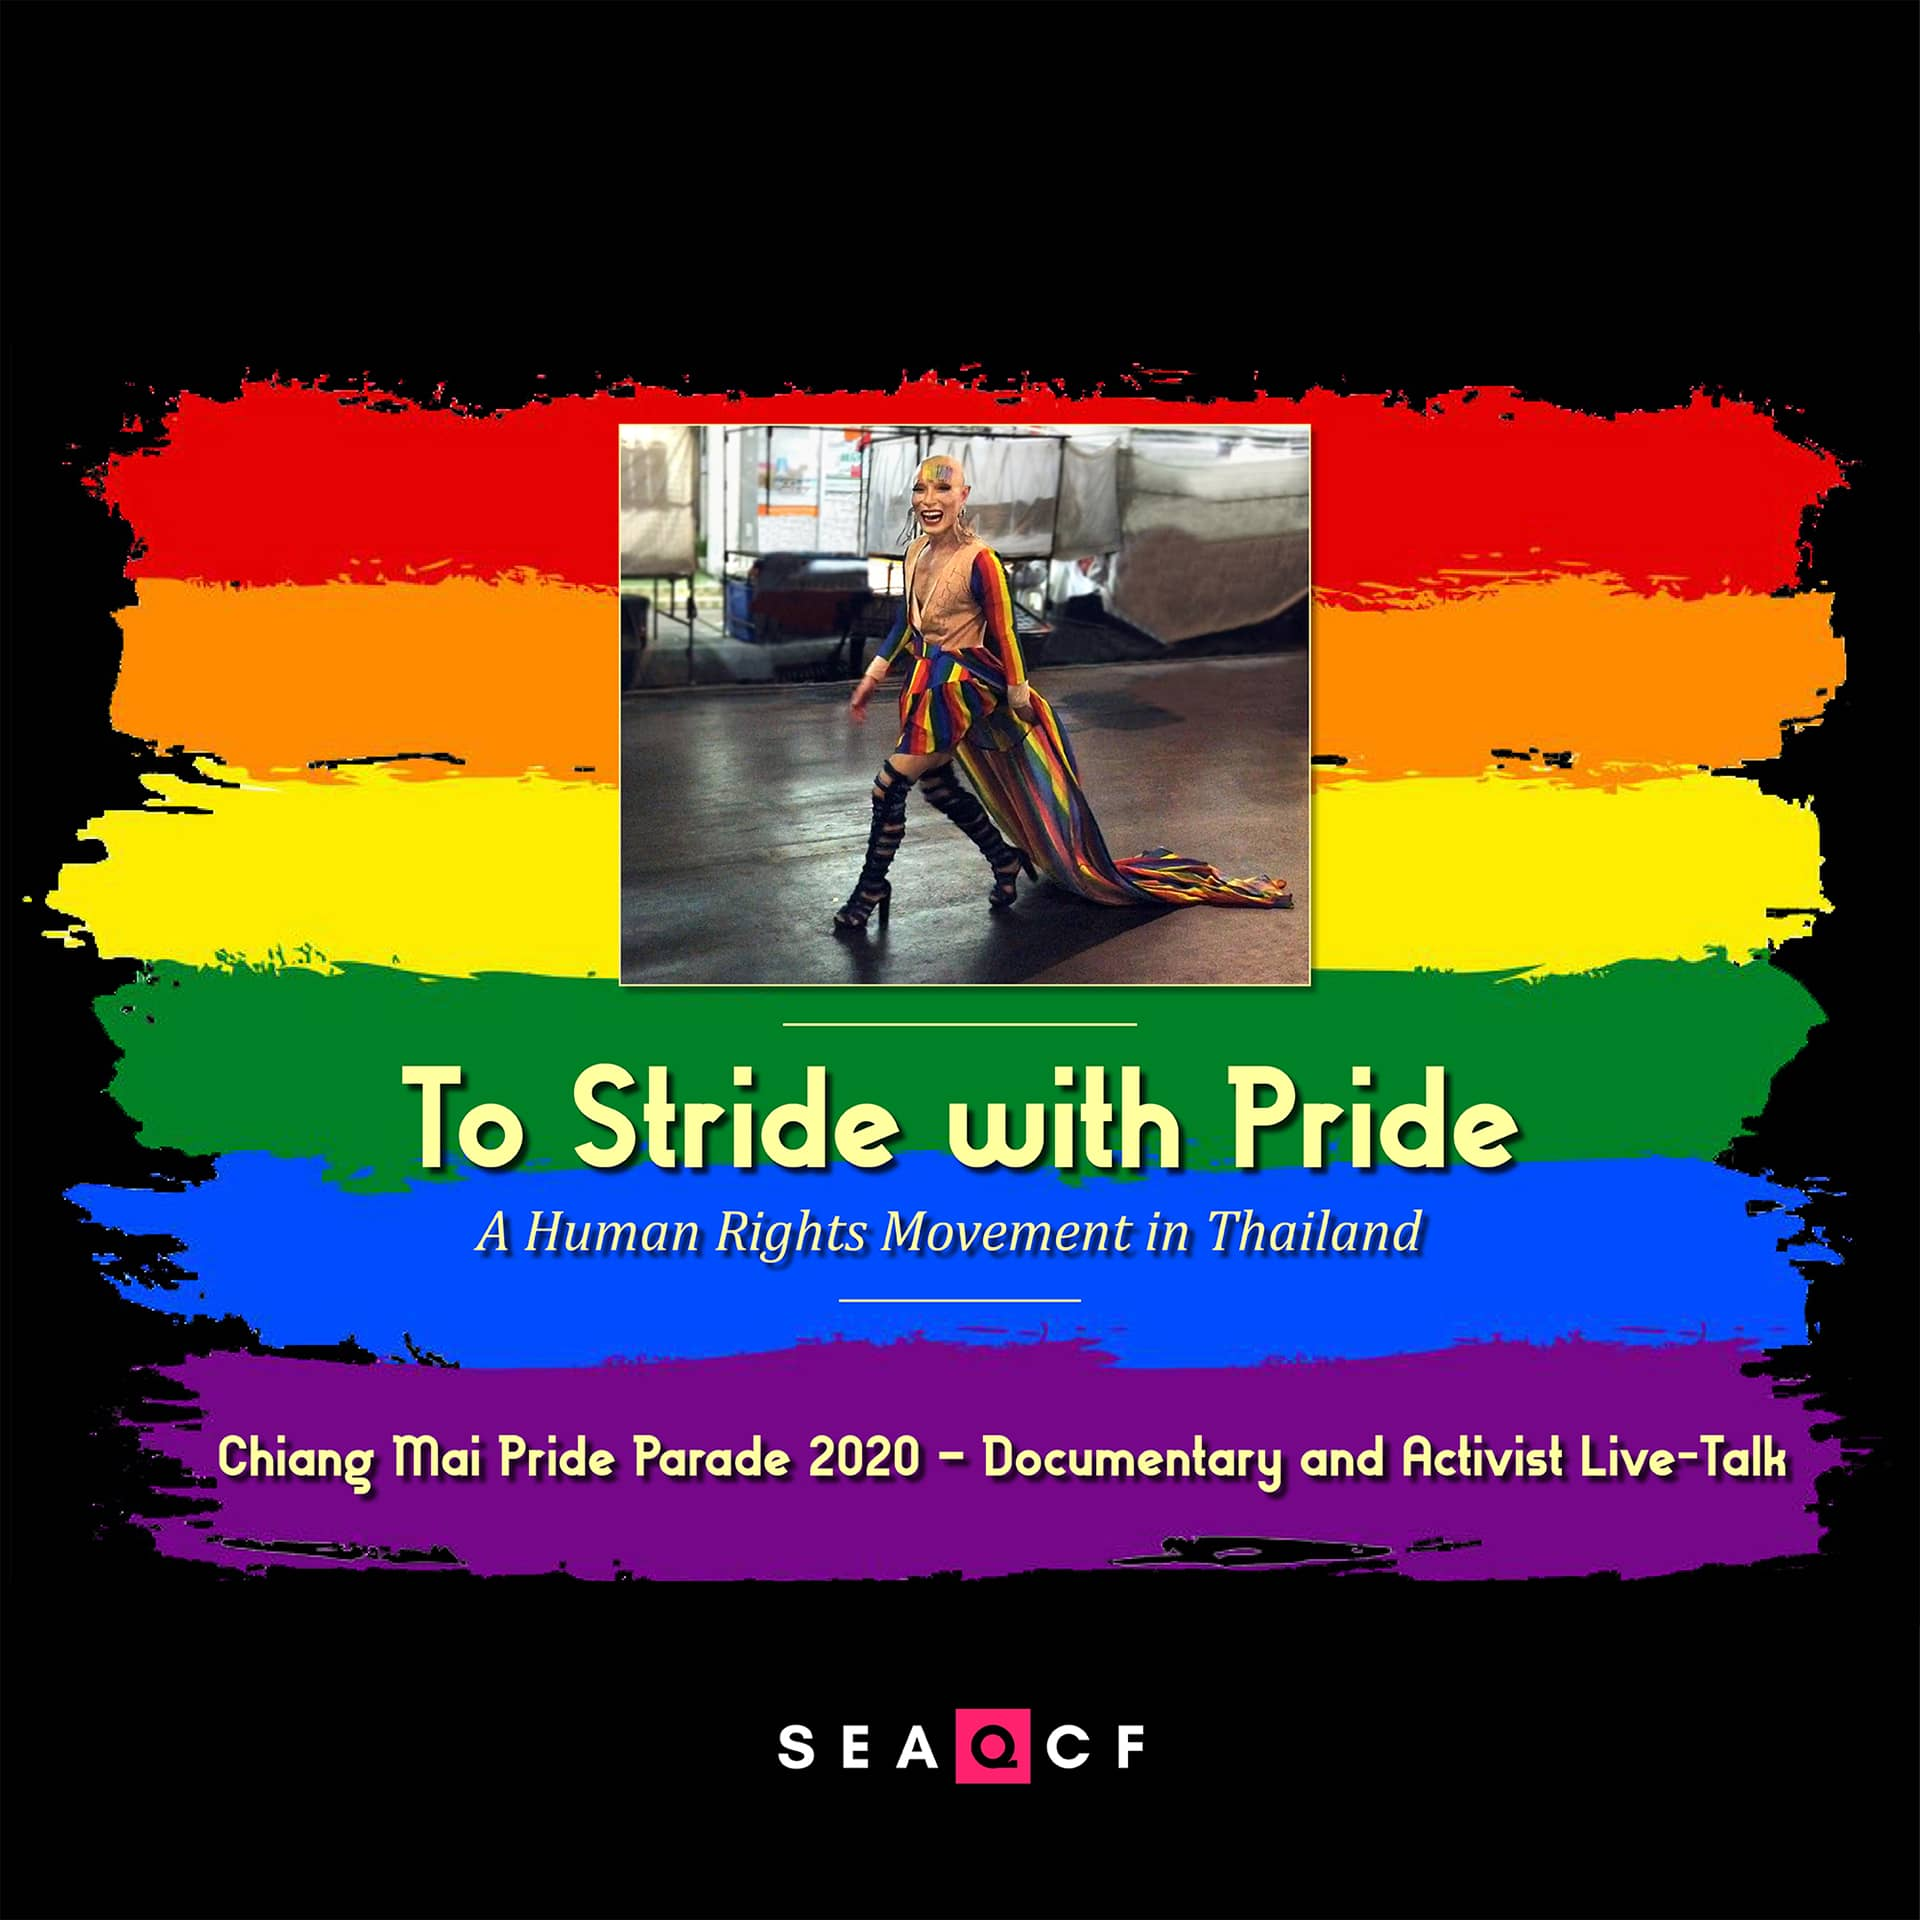 To Stride with Pride Poster, image of a person walking proudly on the street, with a rainbow flag as background